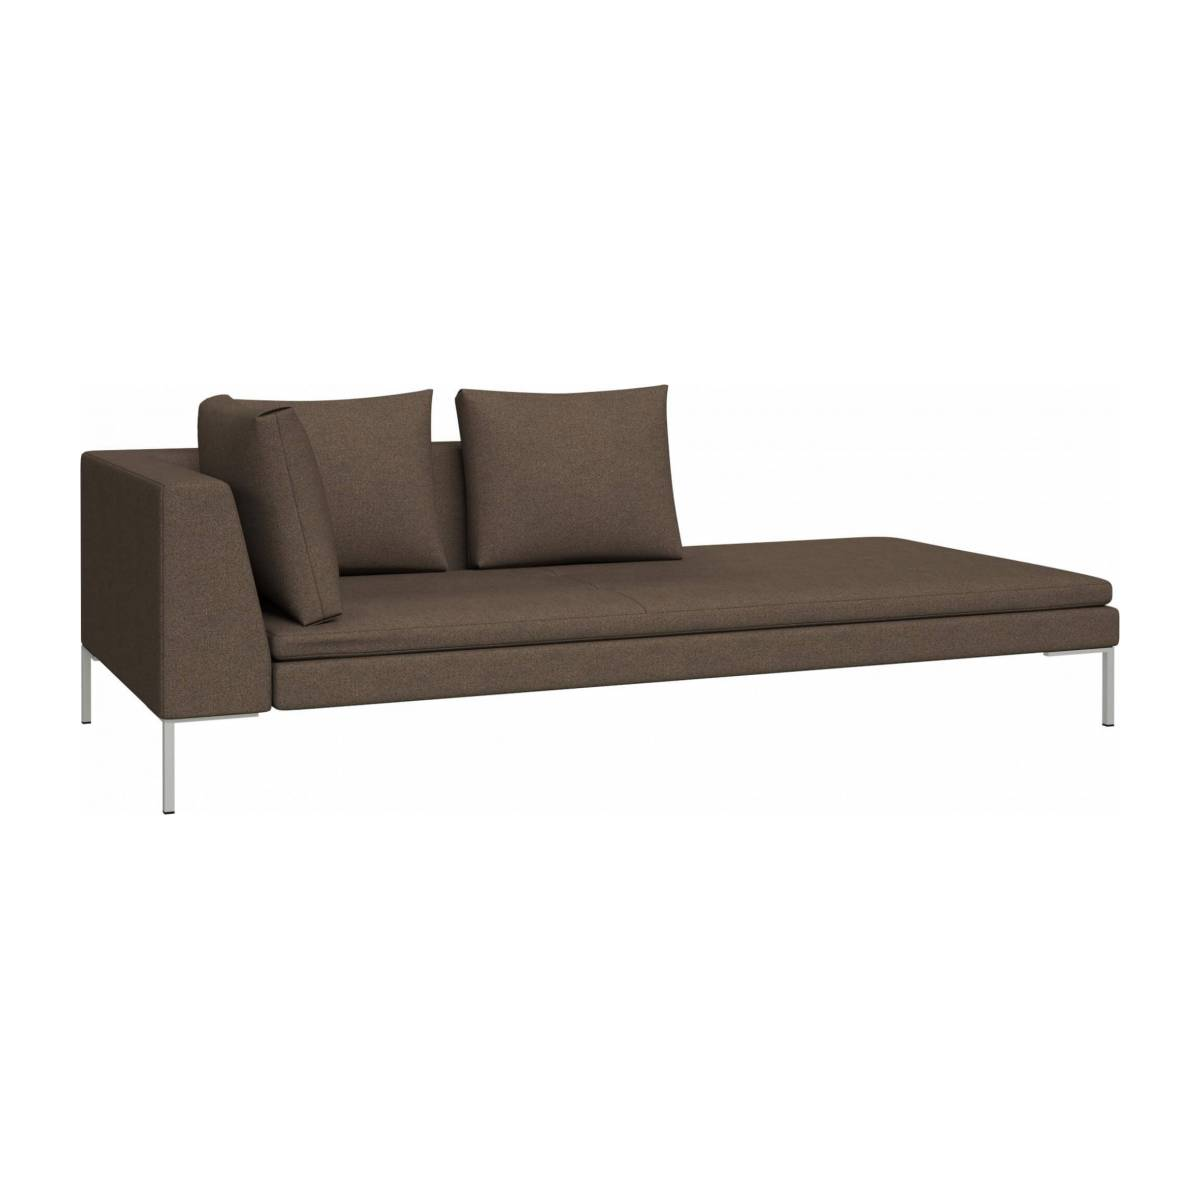 Right chaise longue in Lecce fabric, burned orange n°2